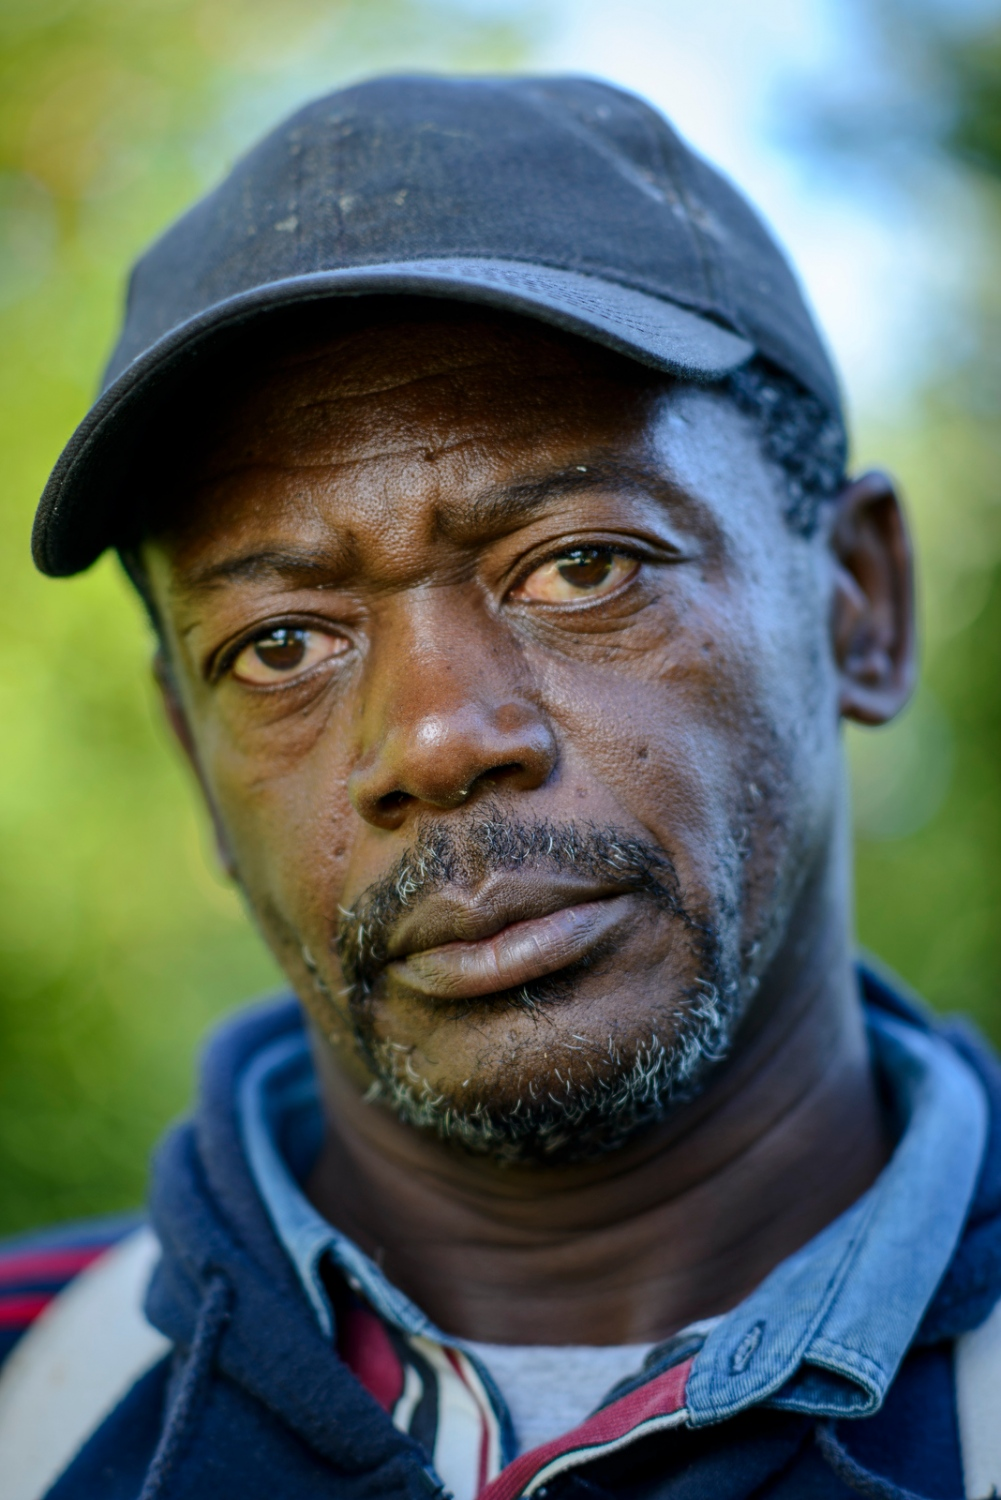 Leroy Henry of Manchester, Jamaica is an apple picker at Sunrise Orchards, Cornwall, Vermont.